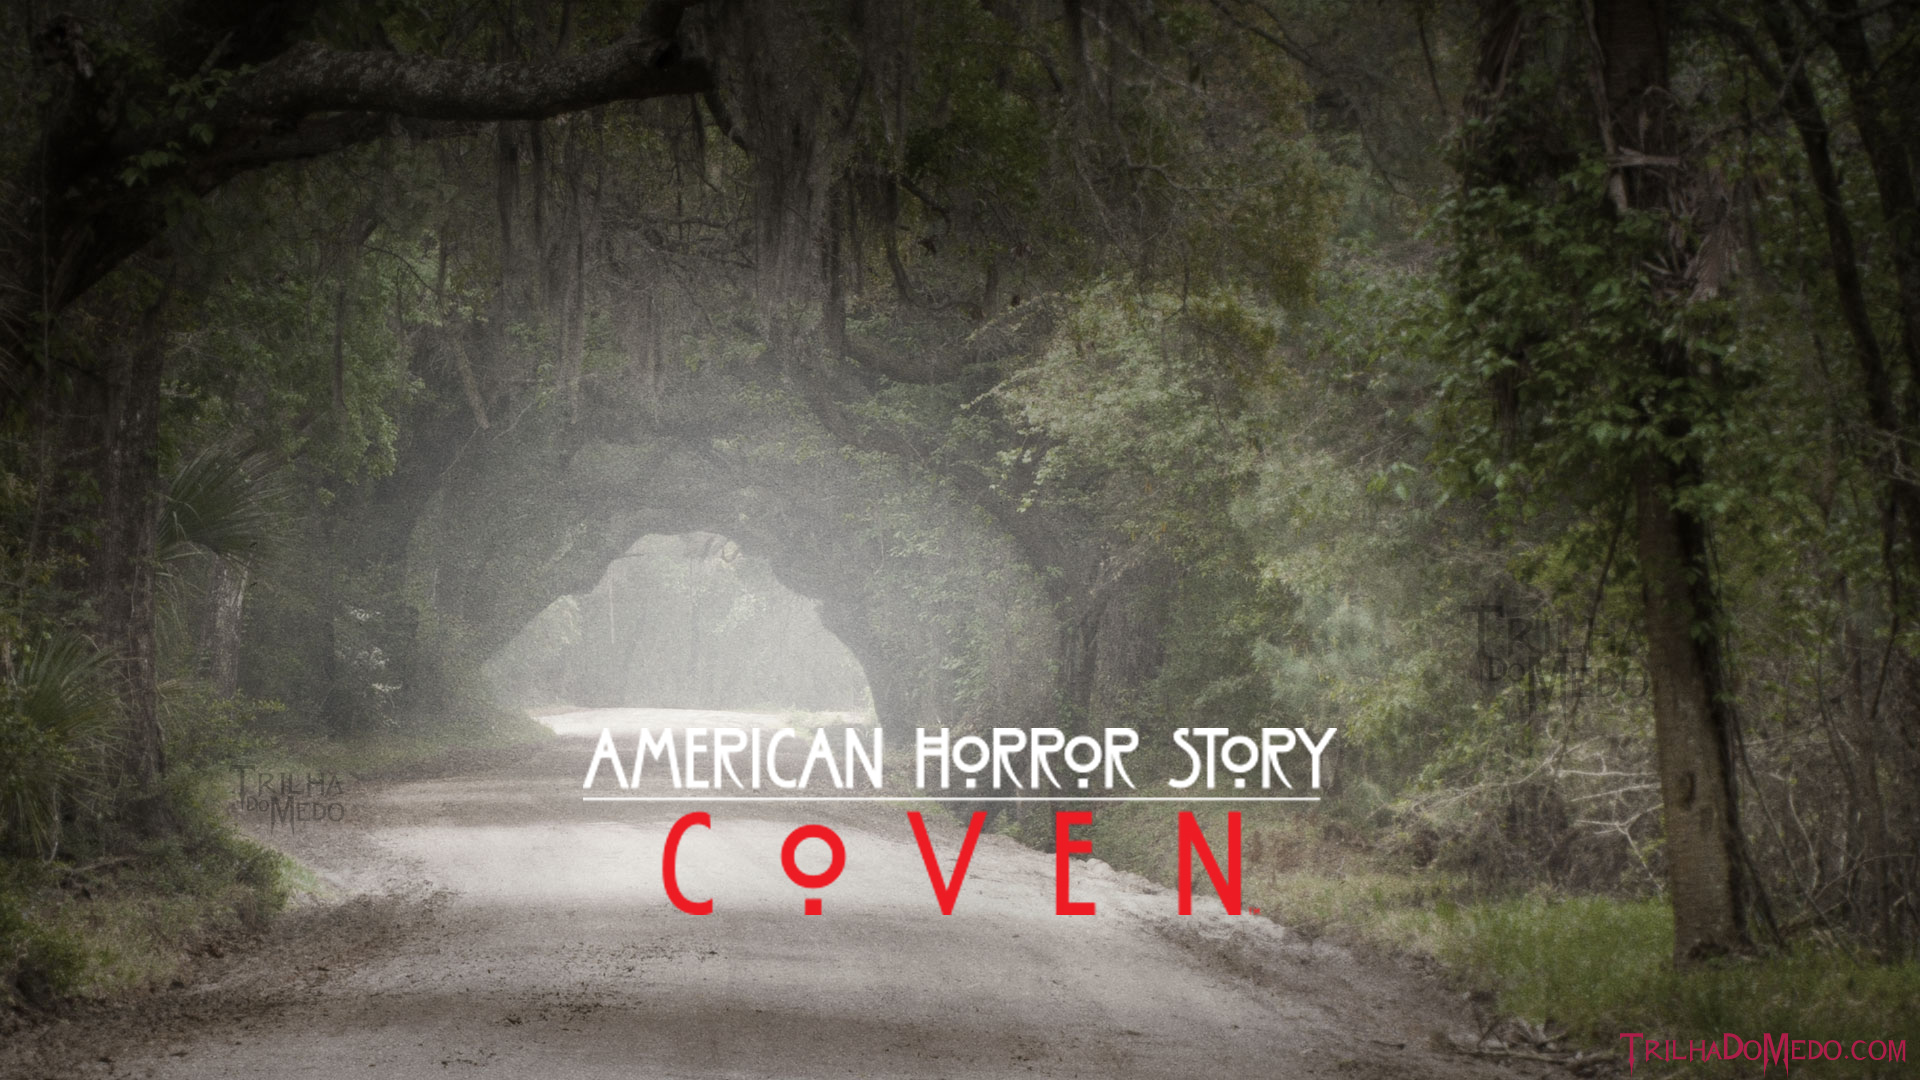 American horror story coven hd wallpaper background image 1920x1080 id 612273 wallpaper - American horror story wallpaper ...